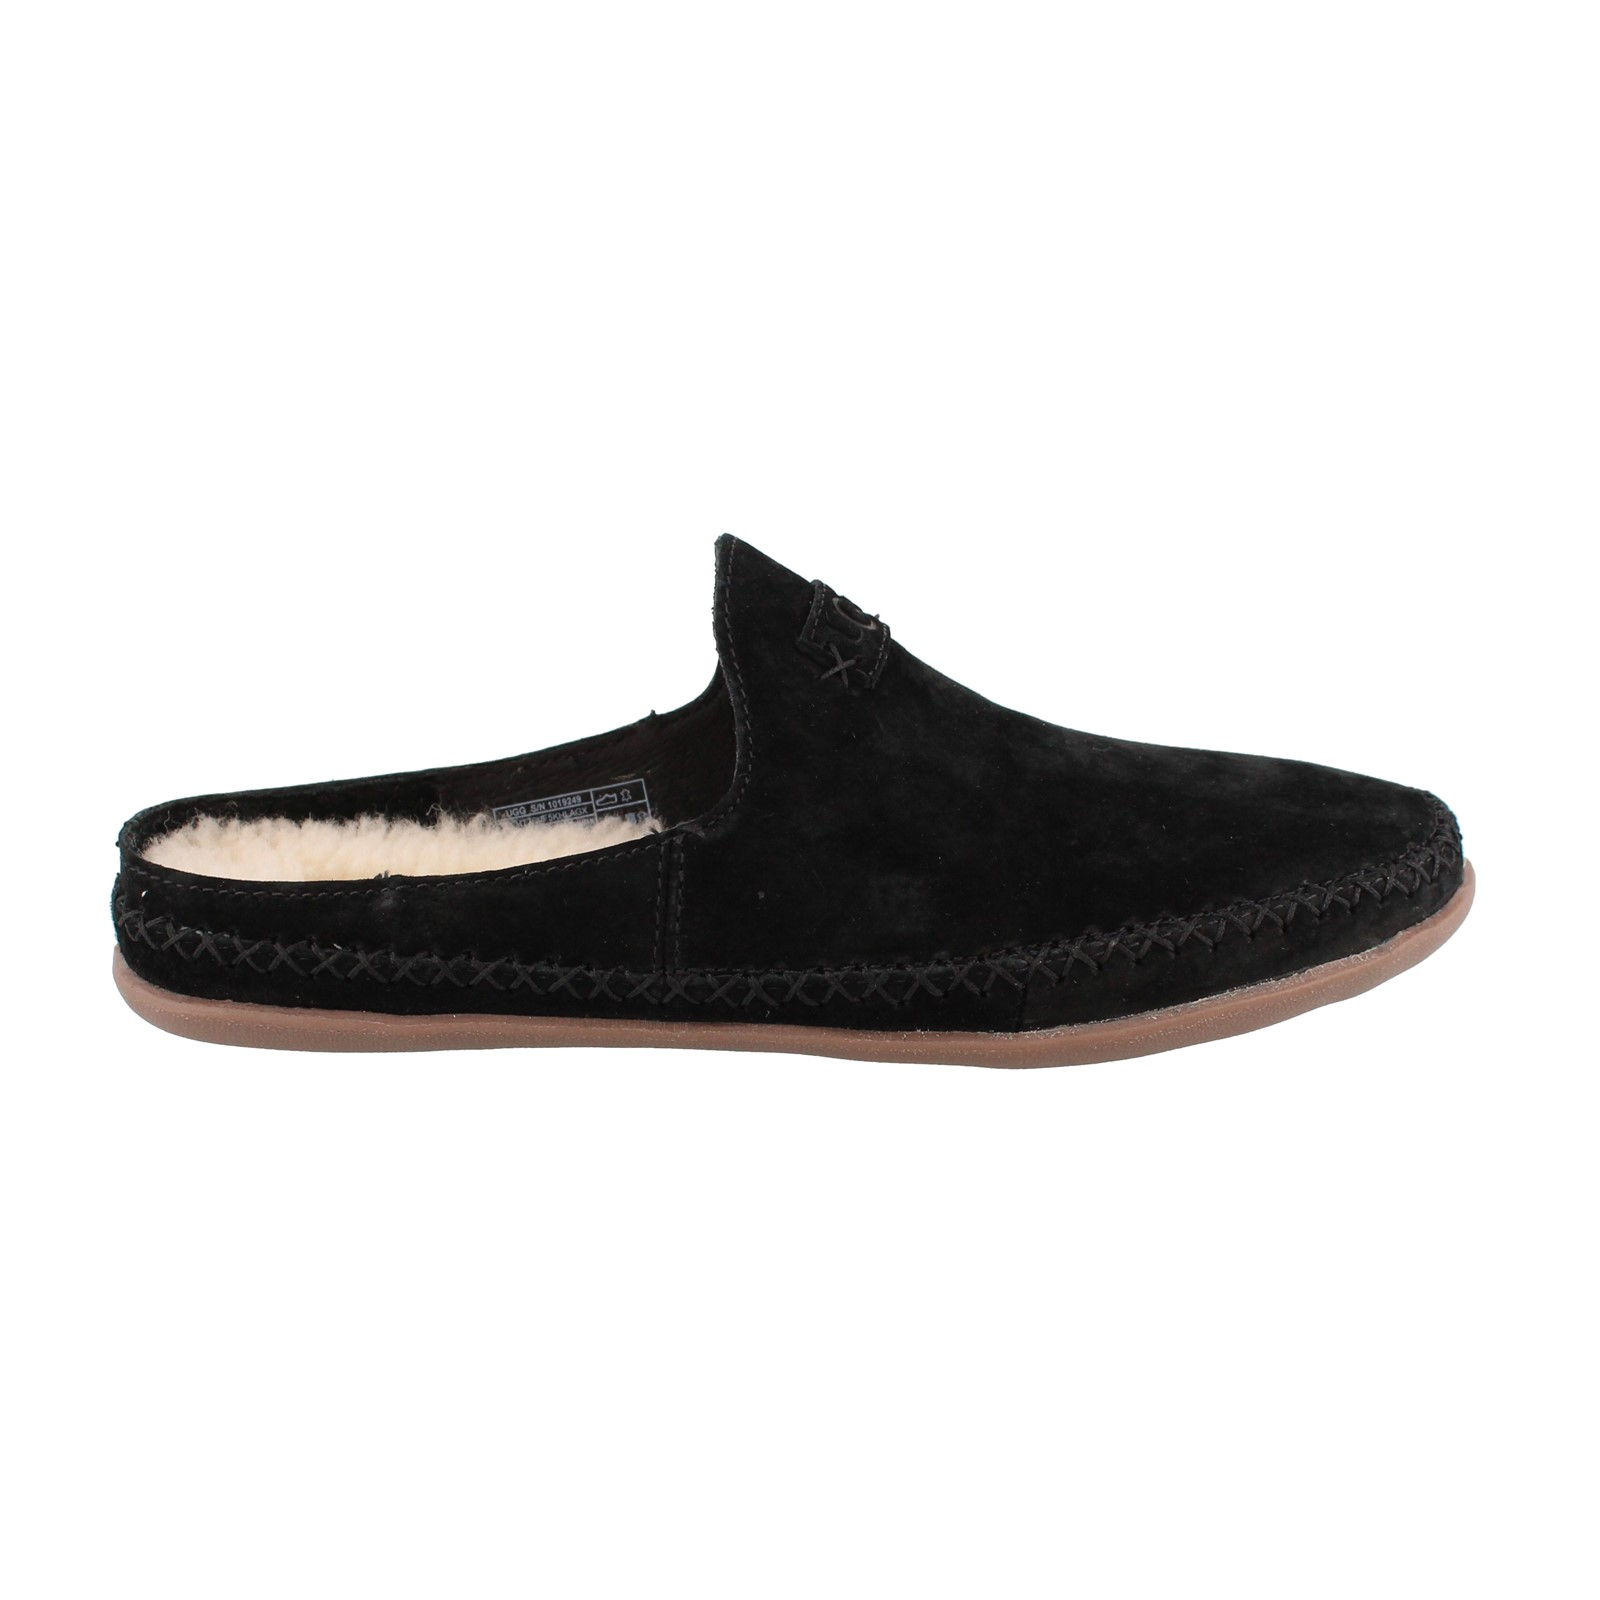 Women's Ugg, Tamara Slip on Shoes